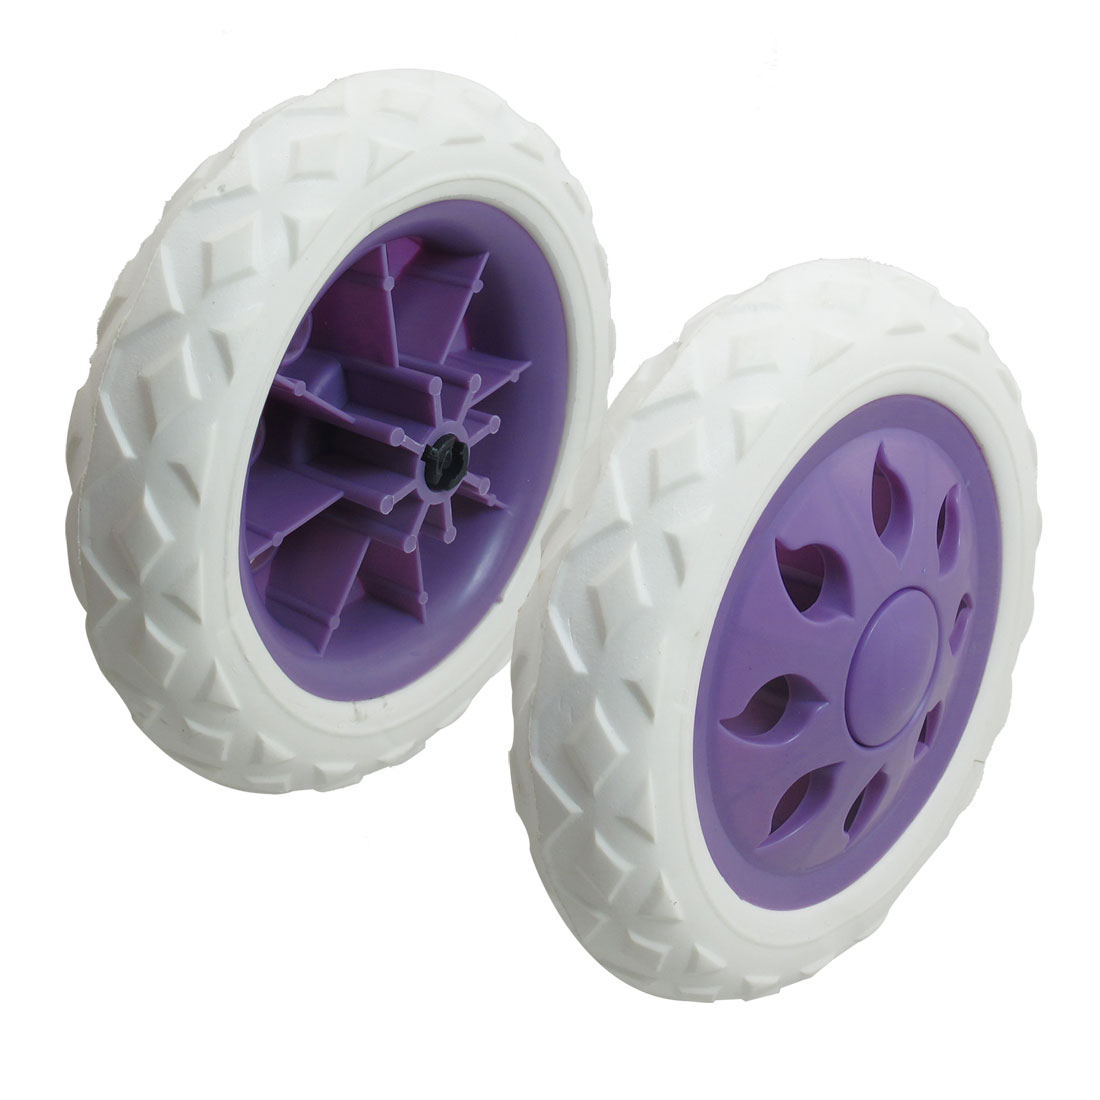 2 Pcs Purple Plastic Core Sun Shape Design Shopping Cart Casters